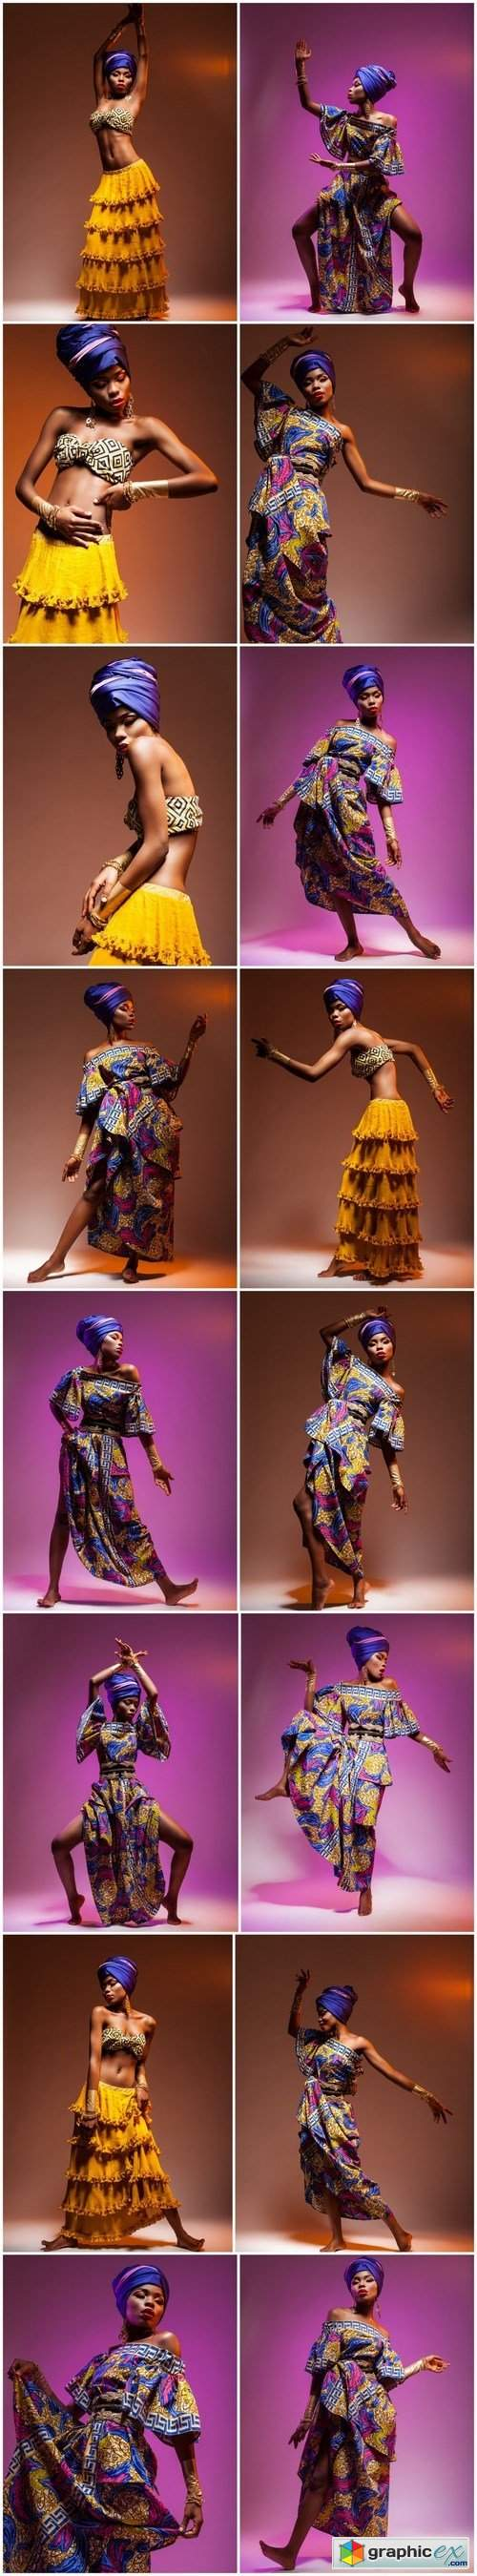 The beautiful African woman in a national suit 2 - 16xUHQ JPEG